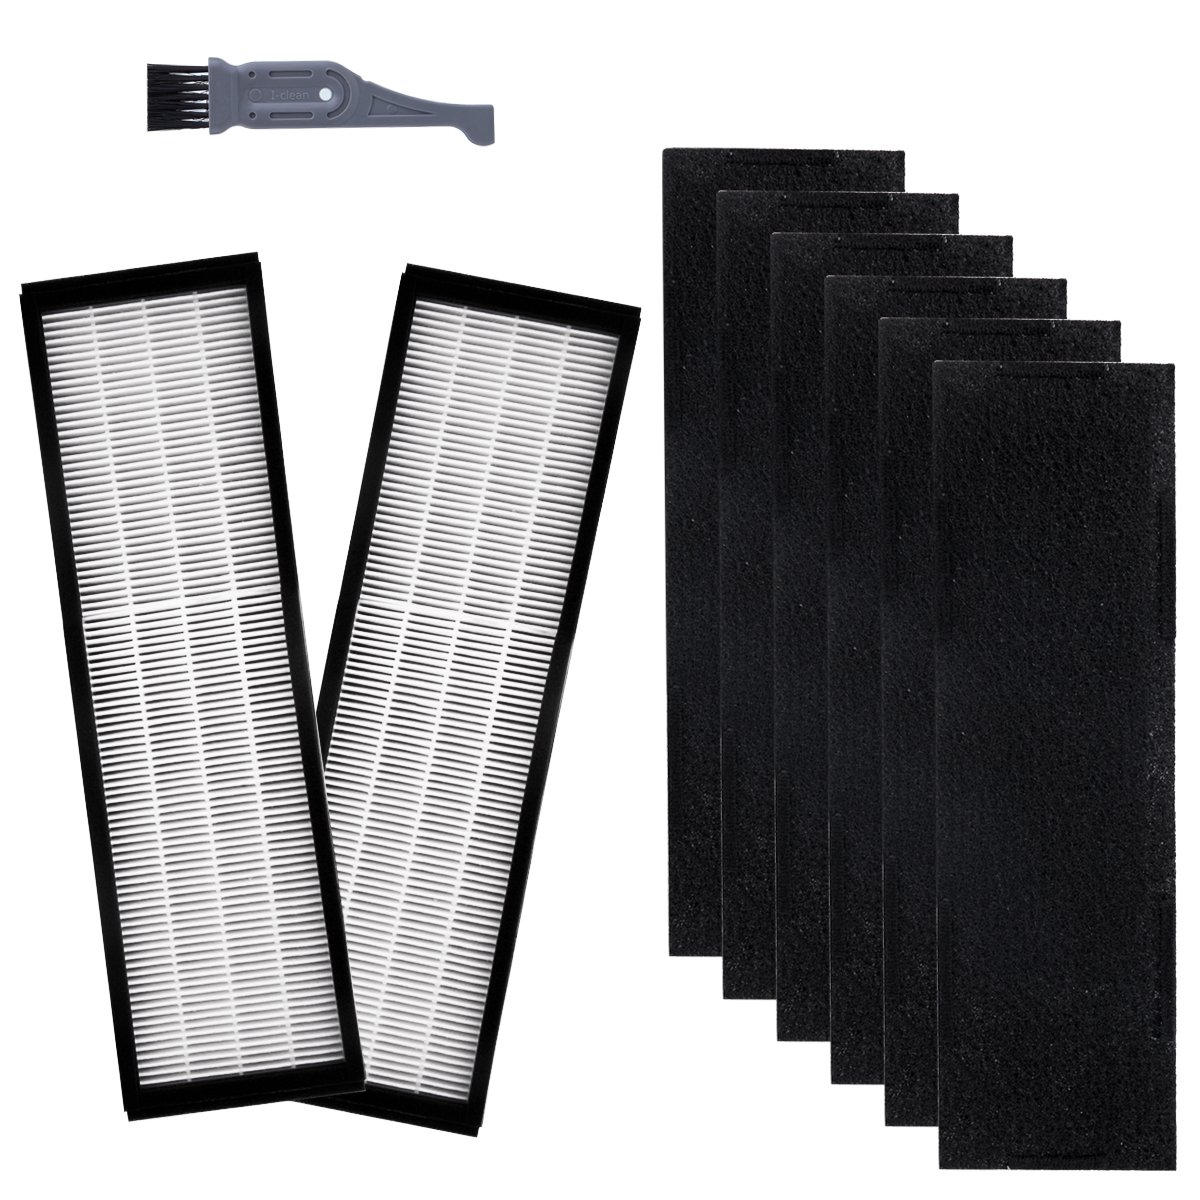 I clean Filter C For GermGuardian FLT5250PT, Replacement Hepa Filter for FLT5000/FLT5111Series Air Purifiers AC5000, AC5000E, AC5350B, AC5300B Series(2 Pcs Hepa Filter C&6 Pcs Carbon Pre Filters) I-clean ICLEAN-241